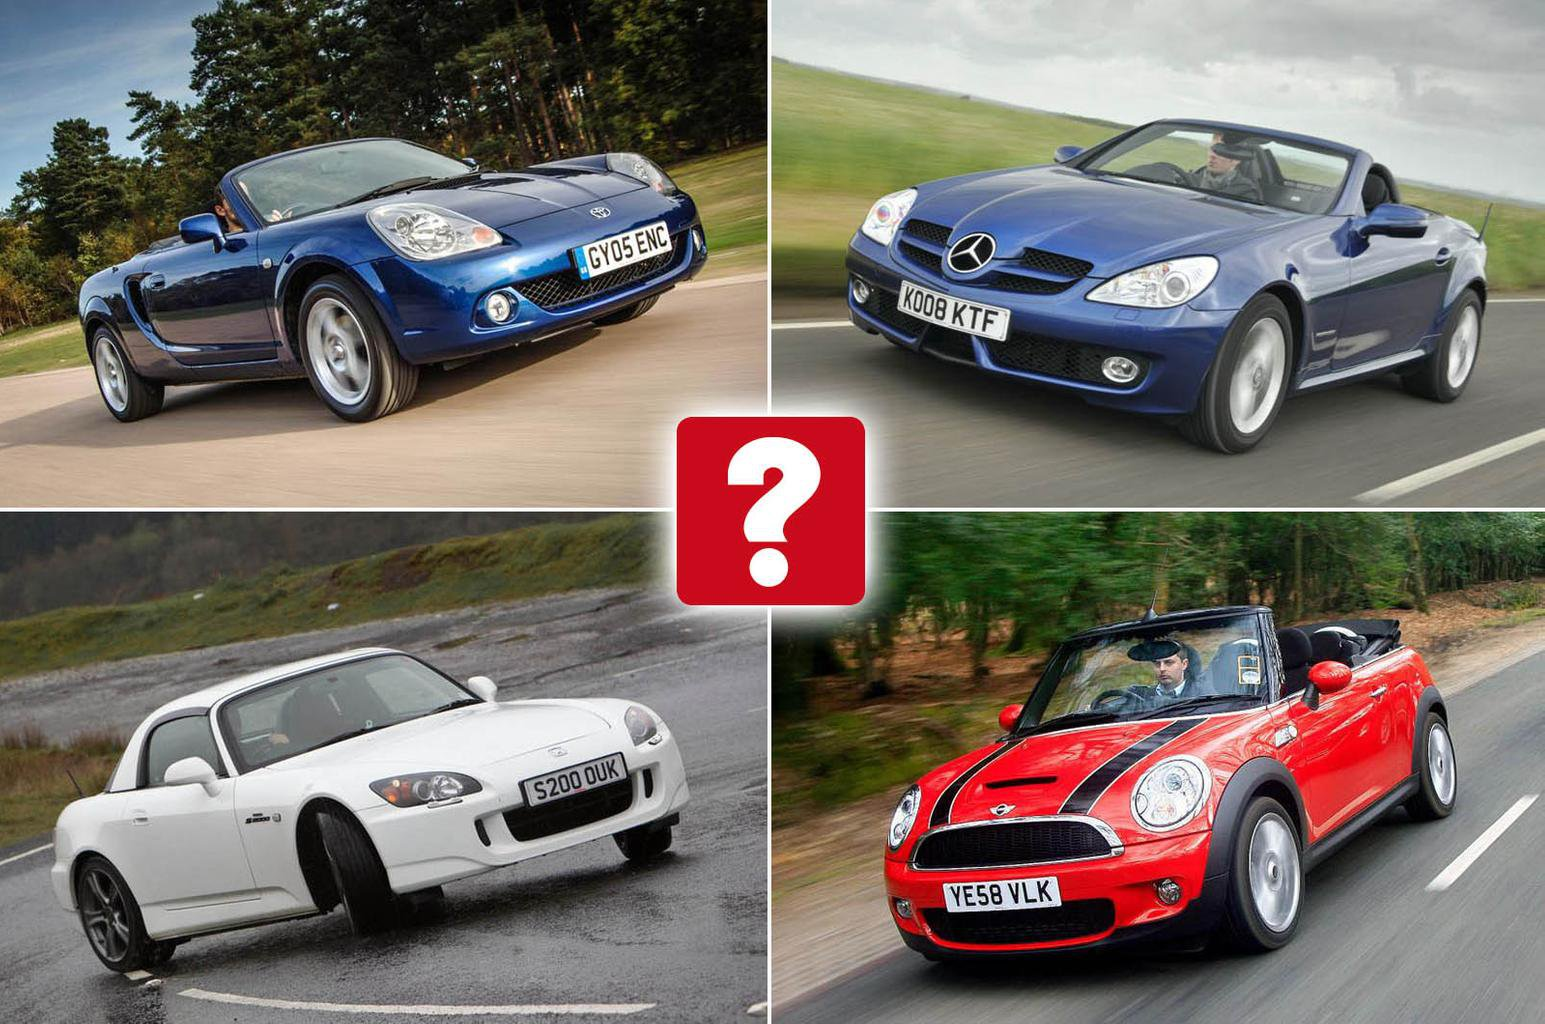 Best used convertible cars for £5000